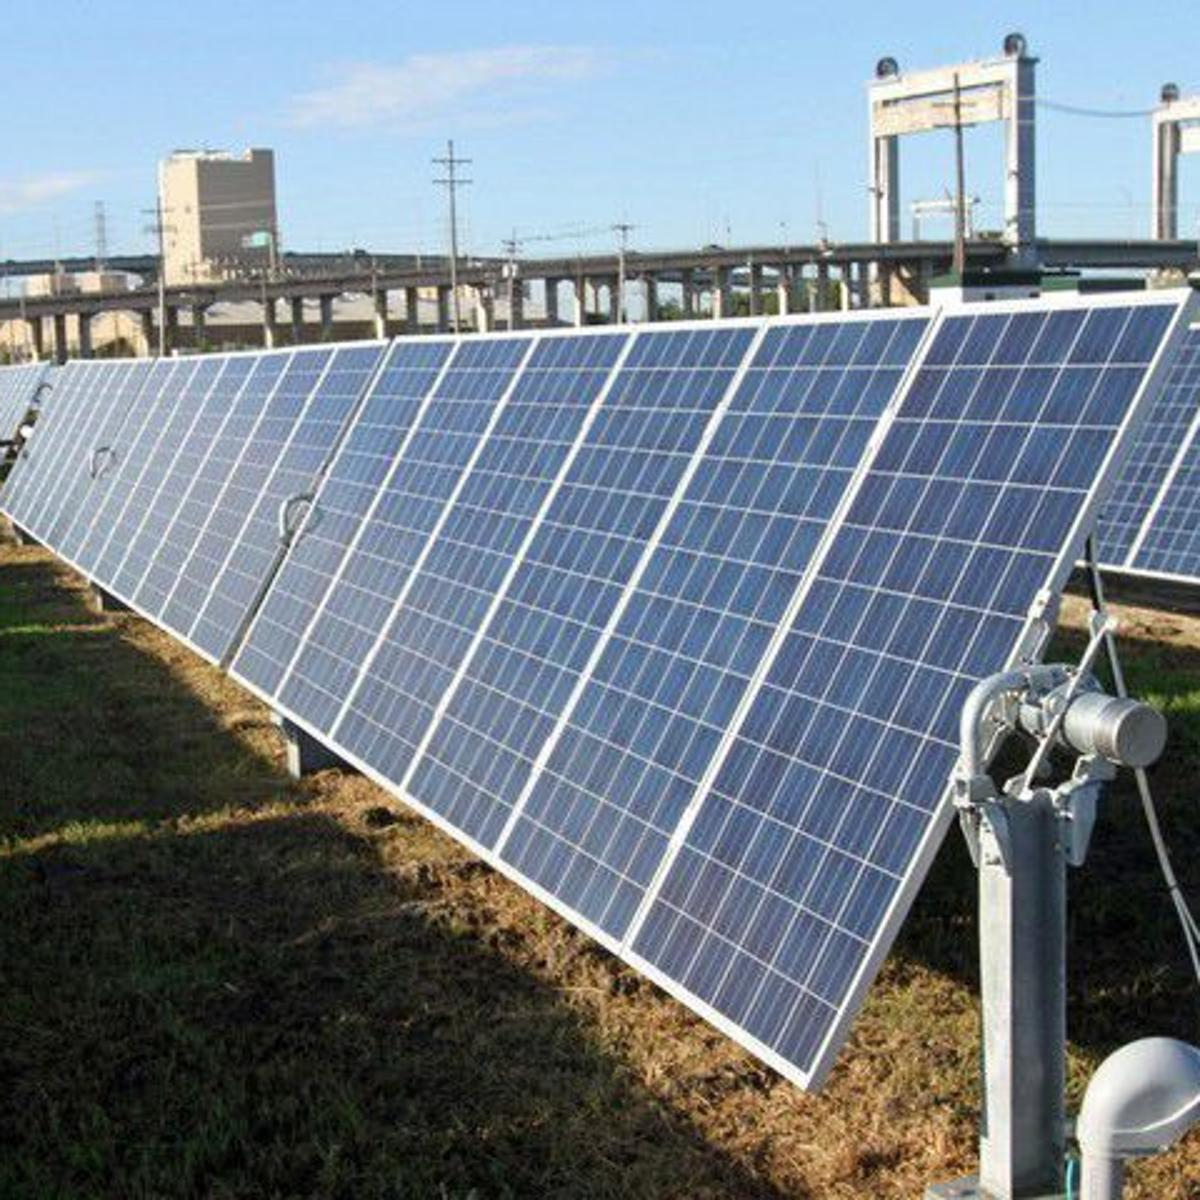 Entergy says it plans to invest big in renewable energy over